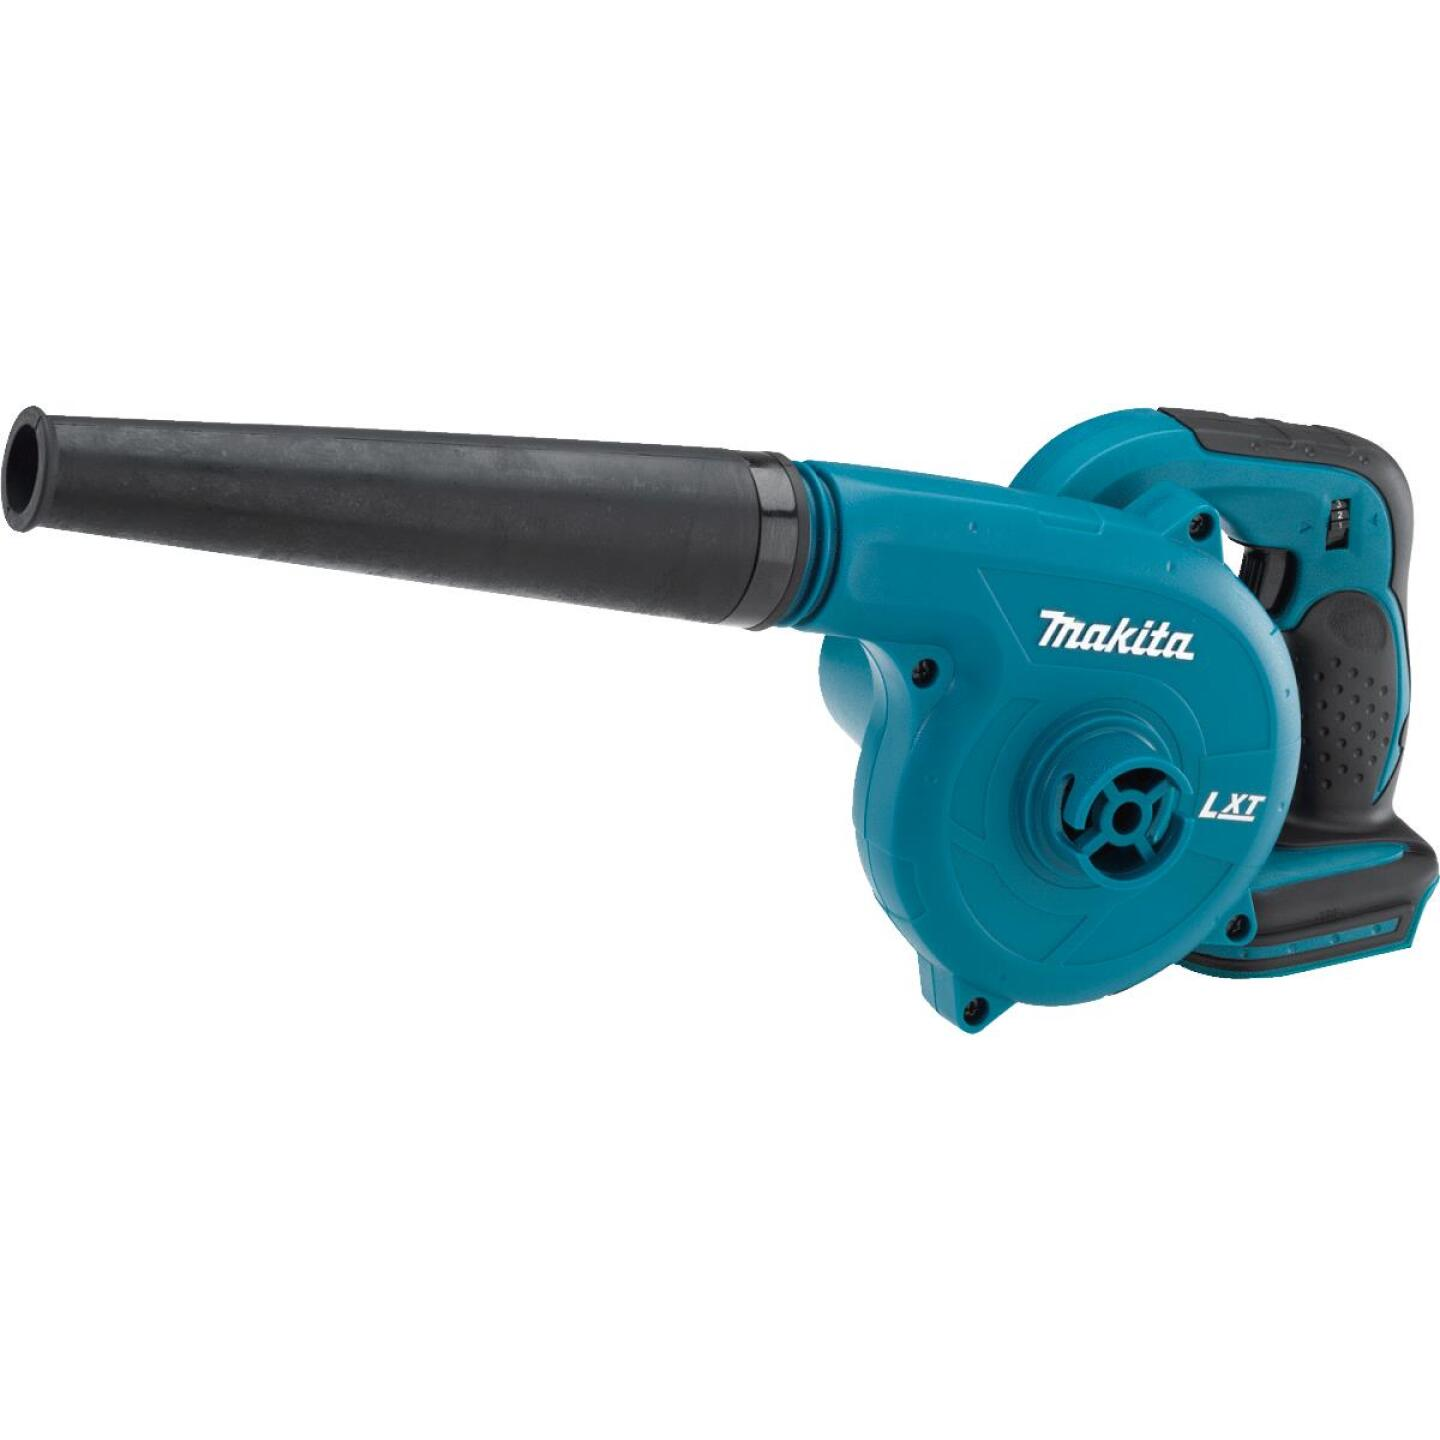 Makita 179 MPH 18 Volt LXT Lithium-Ion Cordless Blower (Bare Tool) Image 1